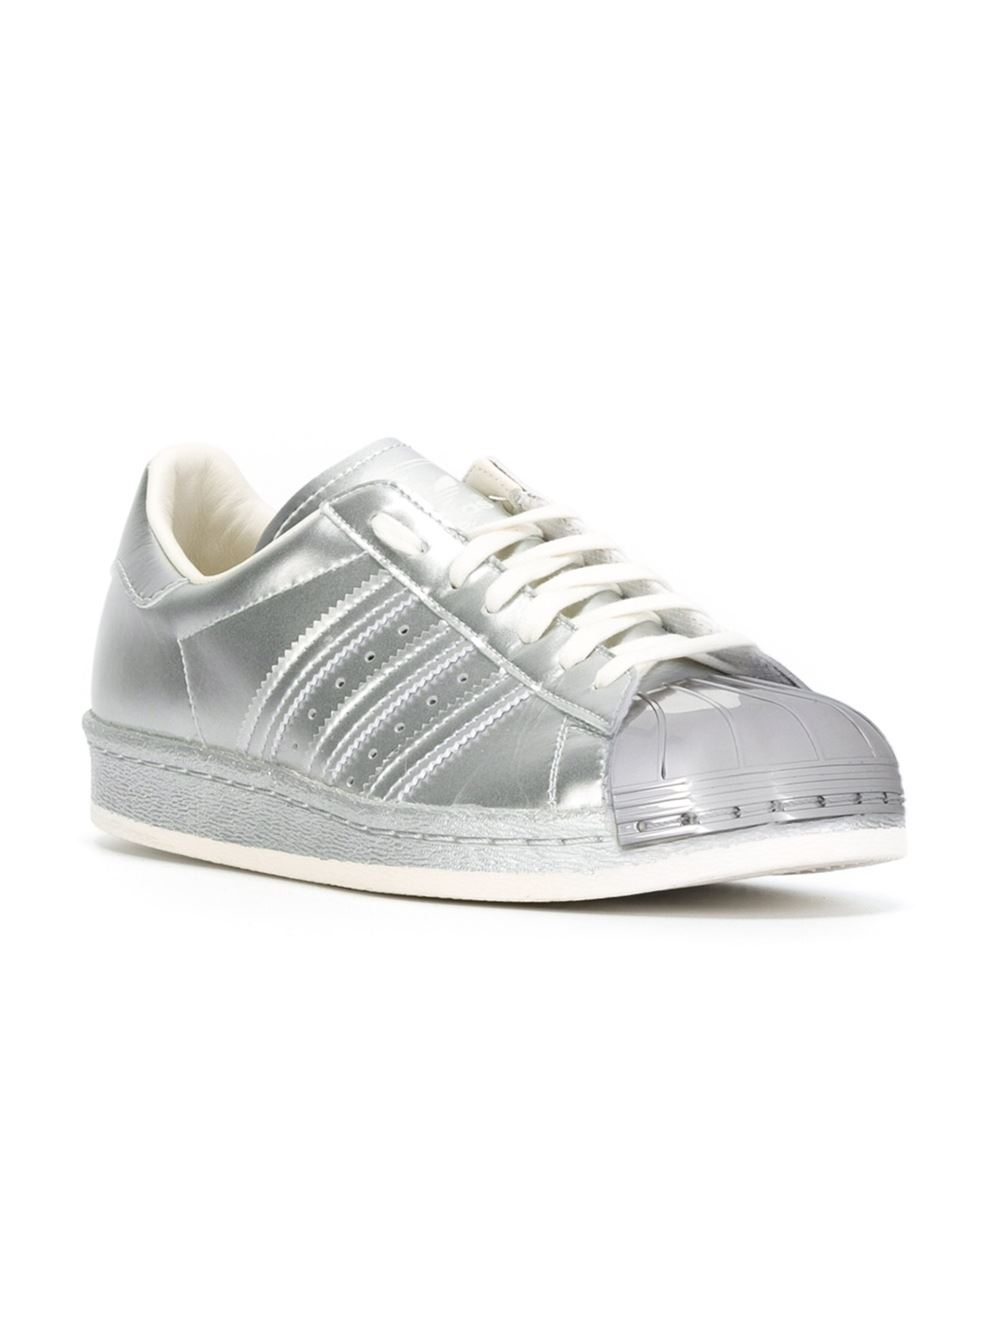 Adidas Originals Superstar - Sneaker Low - Silver Metallic/White